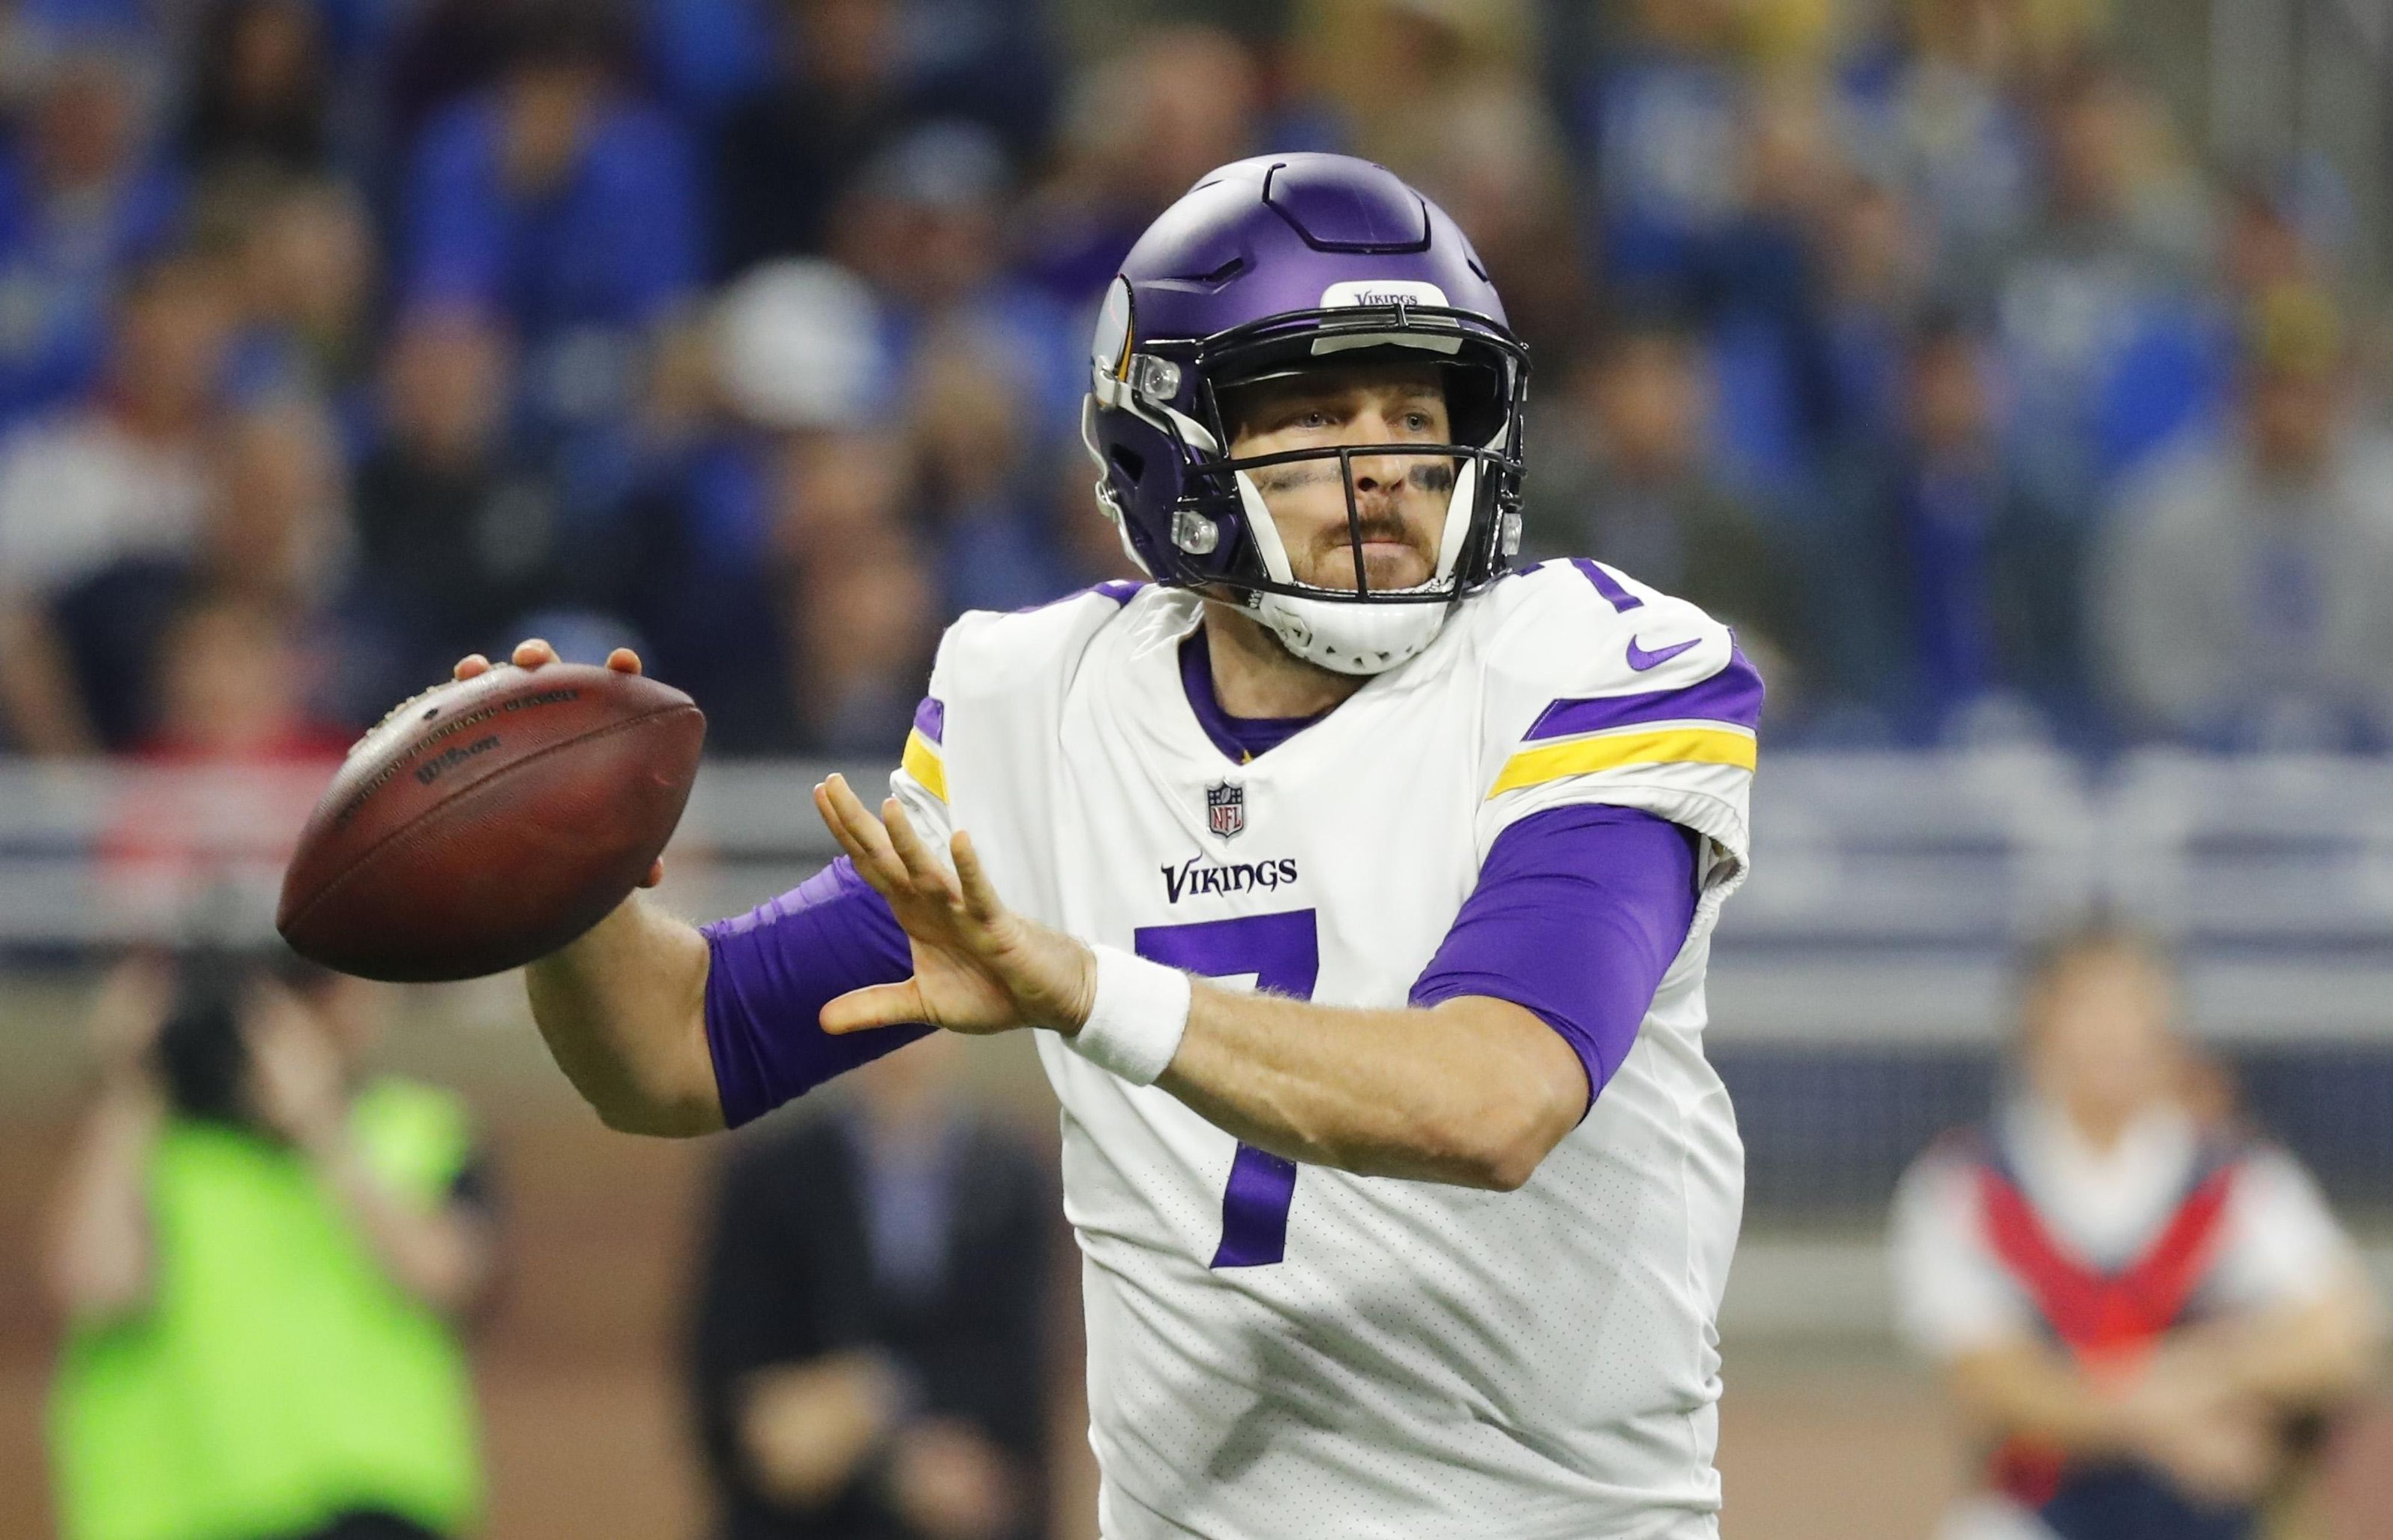 Vikings_lions_football_47125_s4096x2636